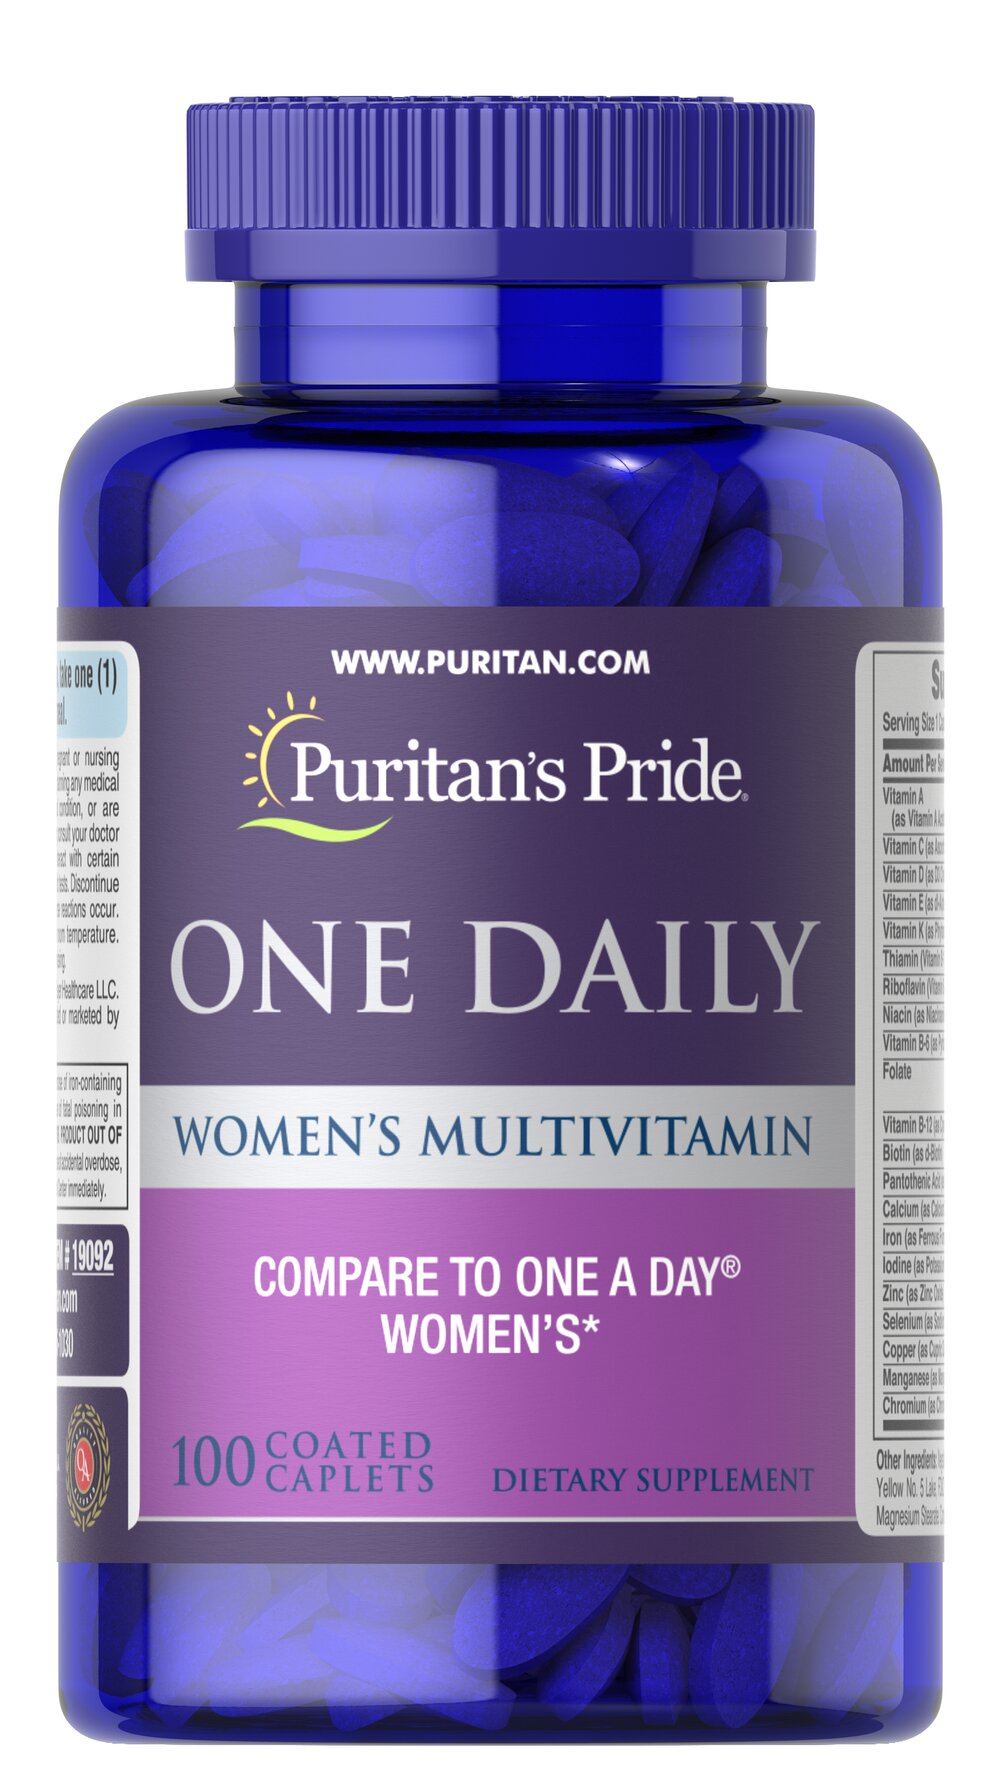 Women's One Daily Multivitamins <p><b>A Convenient Vitamin for the Woman on the Go!</b></p>  <p>Once-daily formula provides a valuable array of vitamins and minerals**</p> <p>Includes 1000 IU of Vitamin D to promote bone and immune system health**</p> <p>Provides 100% of the Daily Value of 5 different B-Vitamins to aid with energy metabolism and nervous system health**</p> 100 Caplets  $13.99